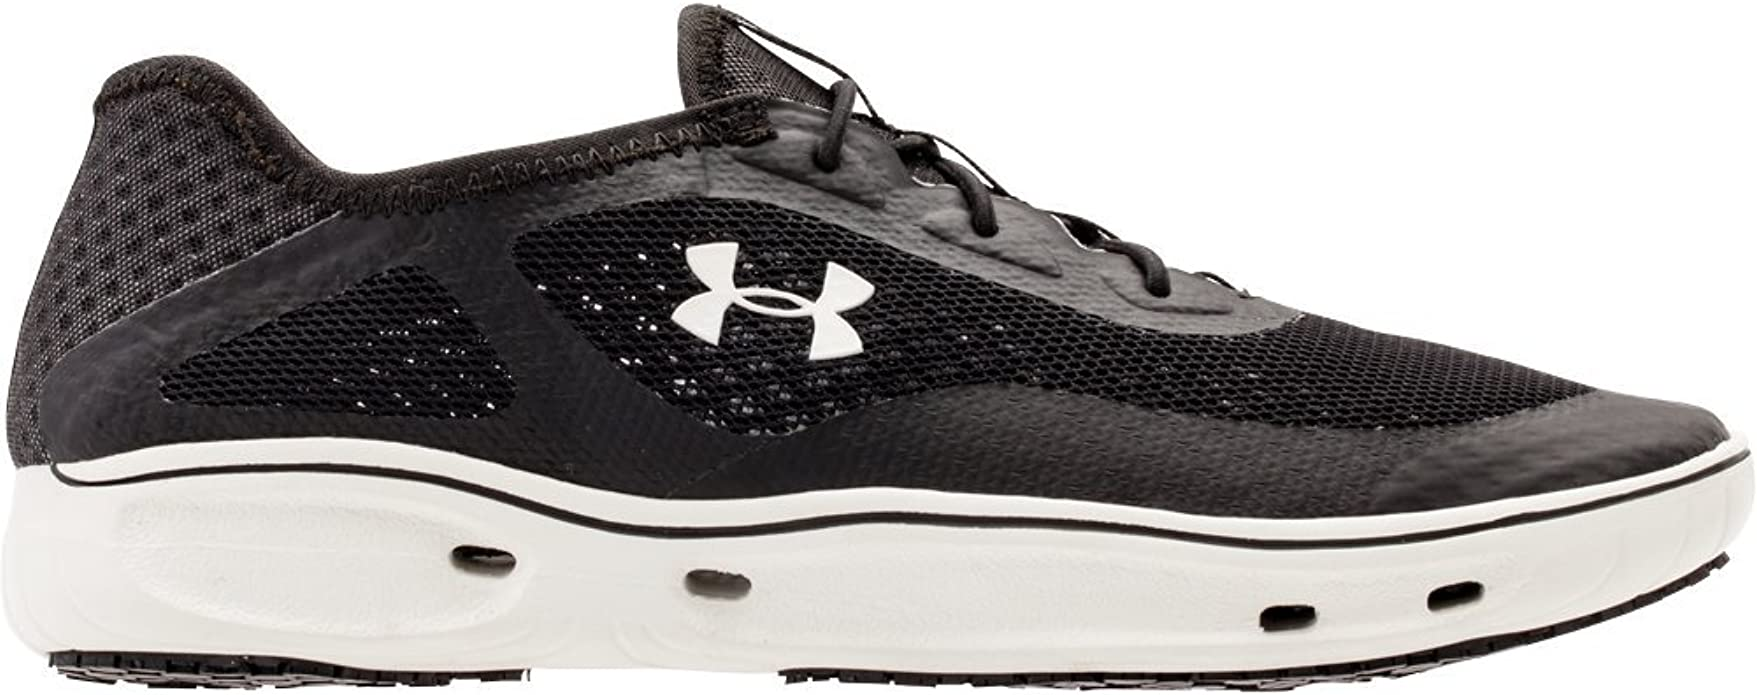 Under Armour Hydro Deck Boat Shoes, BLK